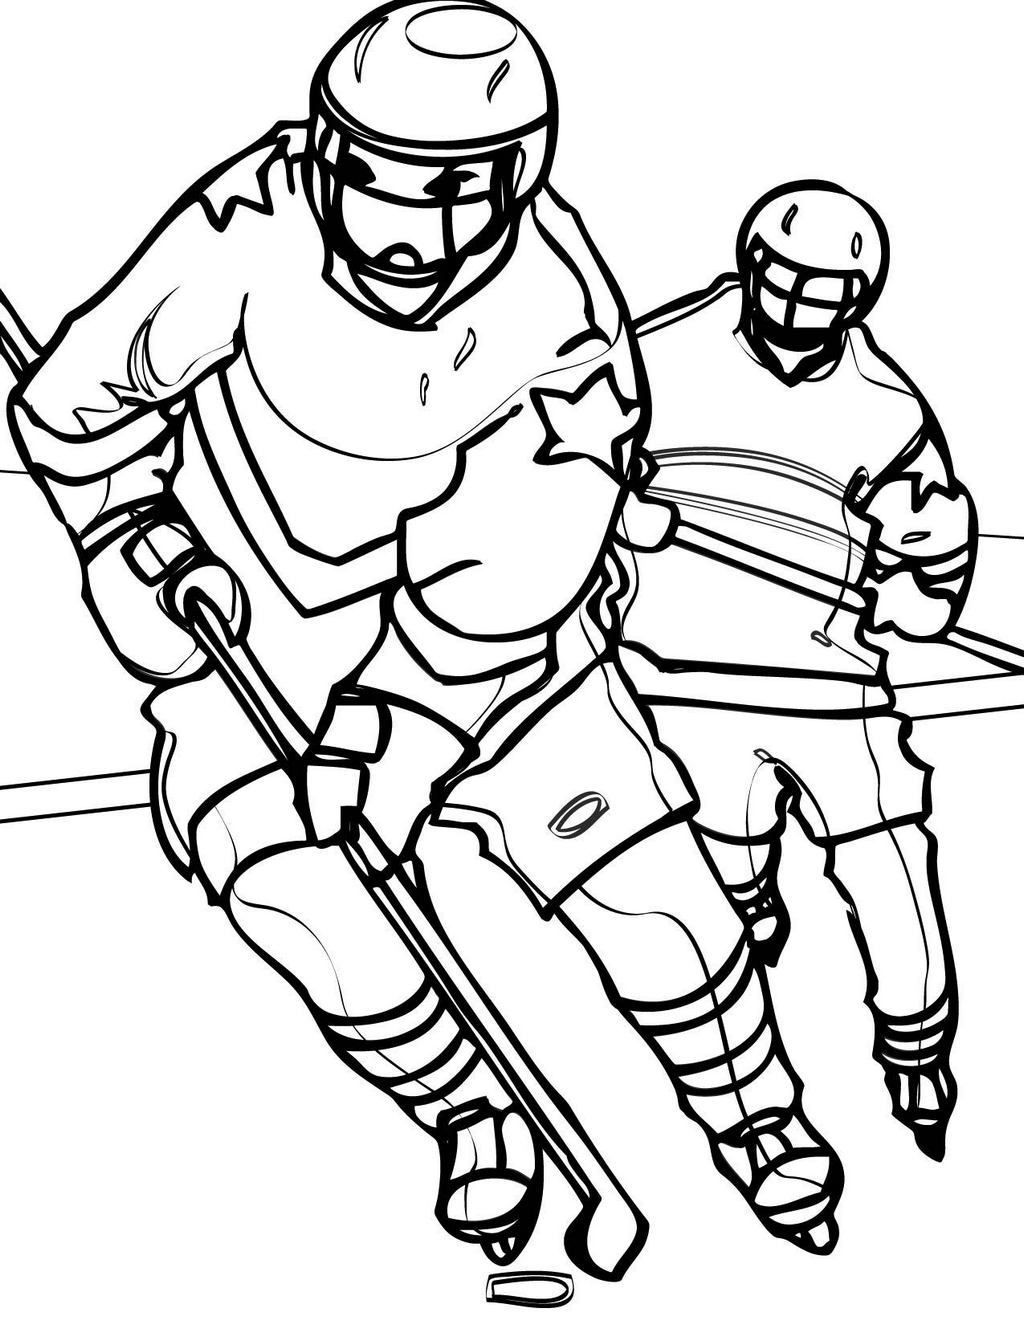 hockey jersey and uniform coloring sheet | sport coloring page ...